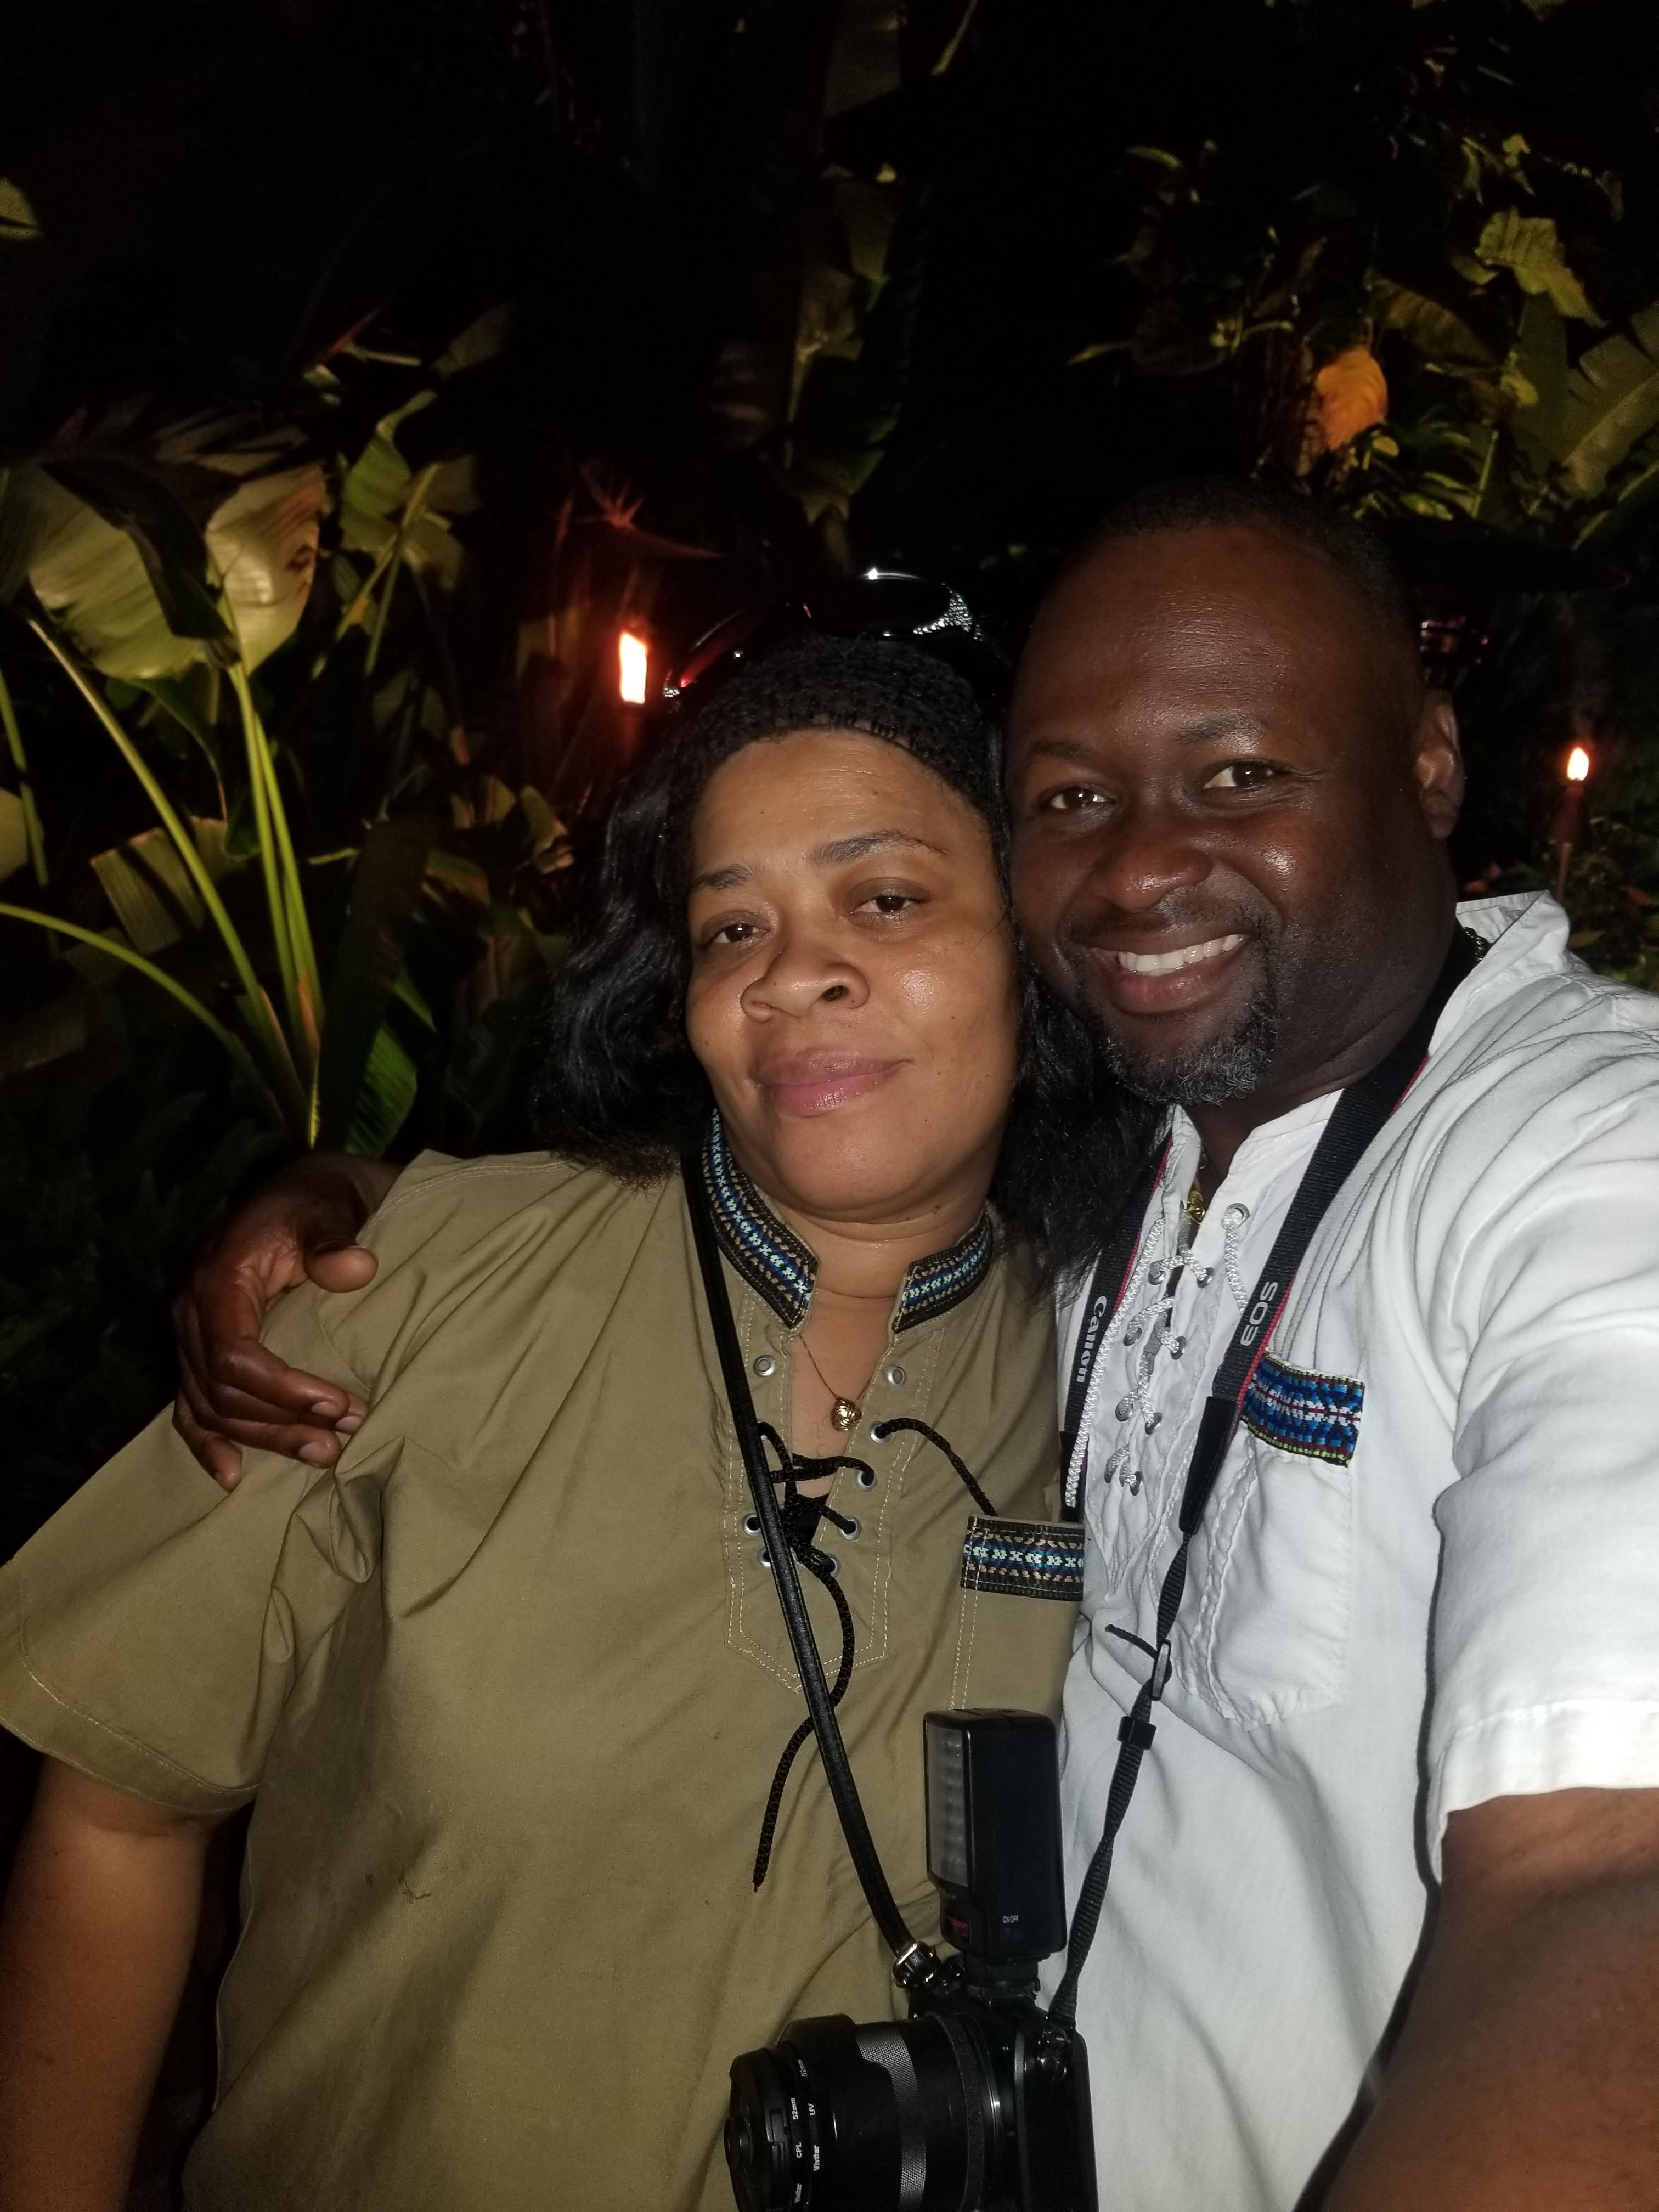 Couple on the Jungle Queen Riverboat Fort Lauderdale Sightseeing and Dinner Cruises